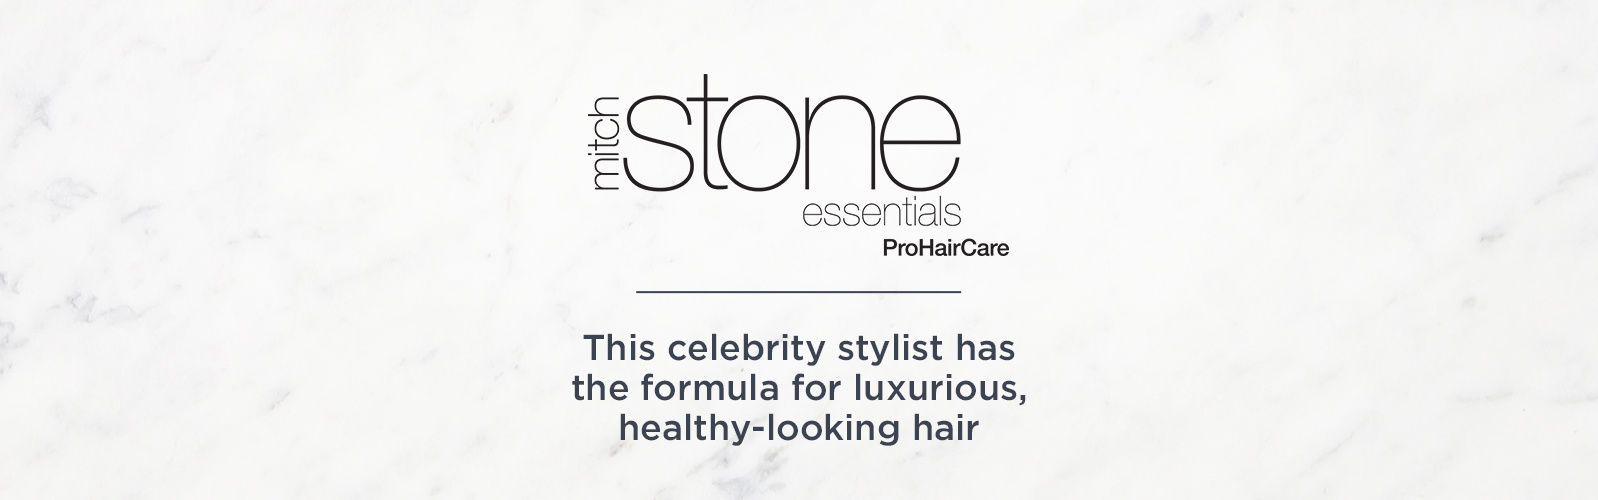 Mitch Stone Essentials. This celebrity stylist has the formula for luxurious, healthy-looking hair.